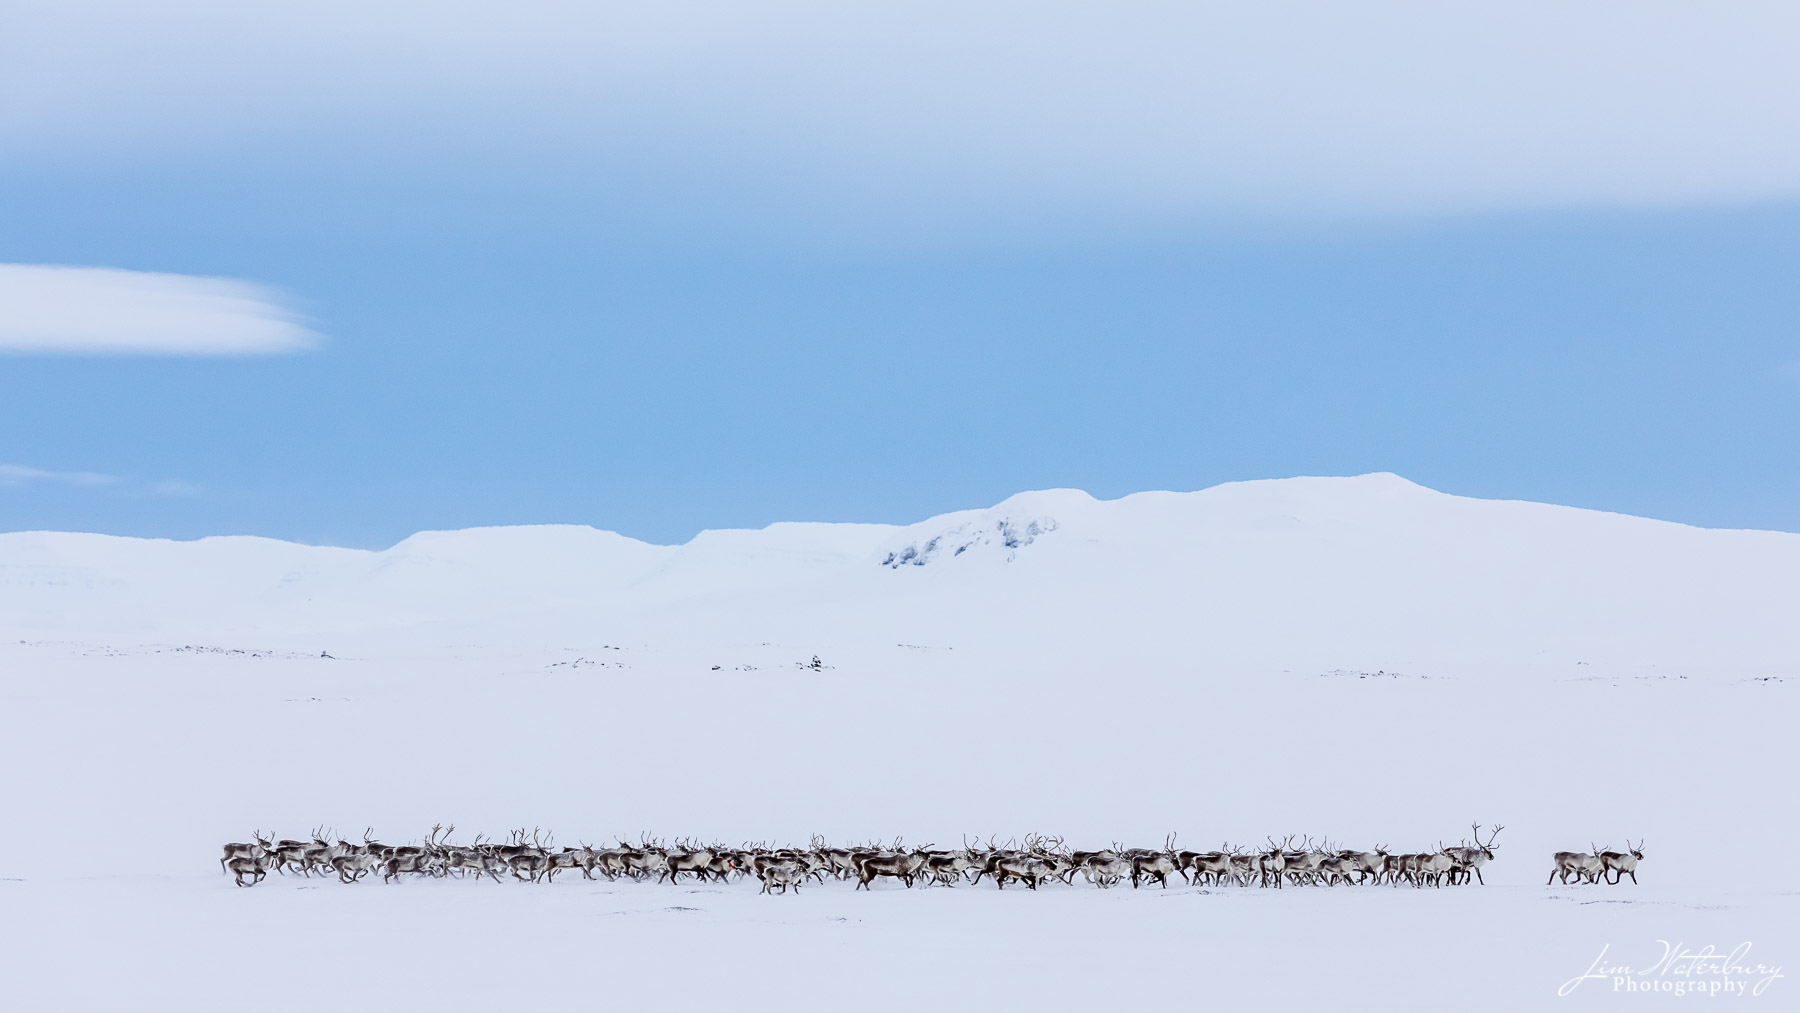 herd, reindeer, snow, landscape, Lake Myvatn, Iceland, photo